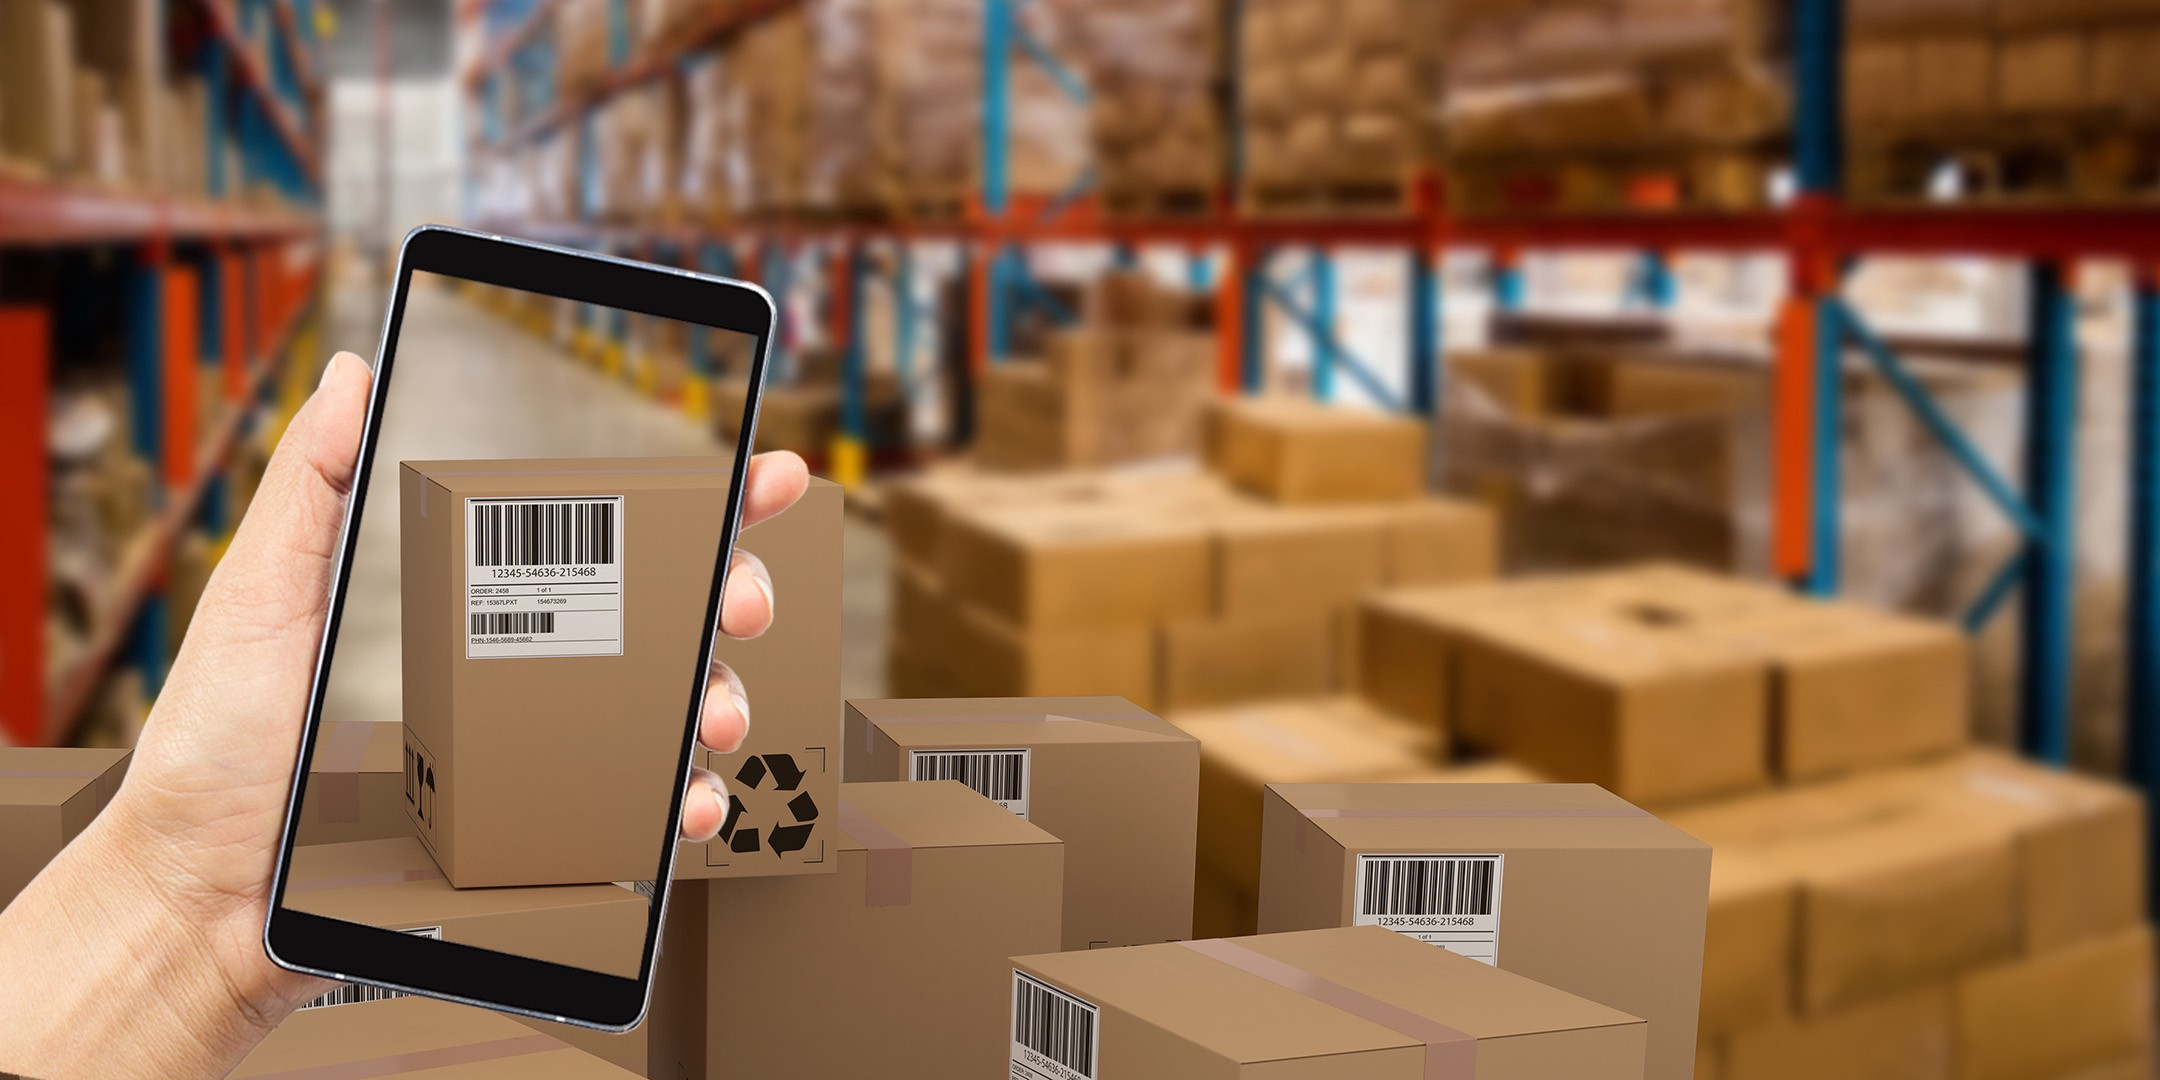 A VRS scanning software for pharmaceutical supply chain